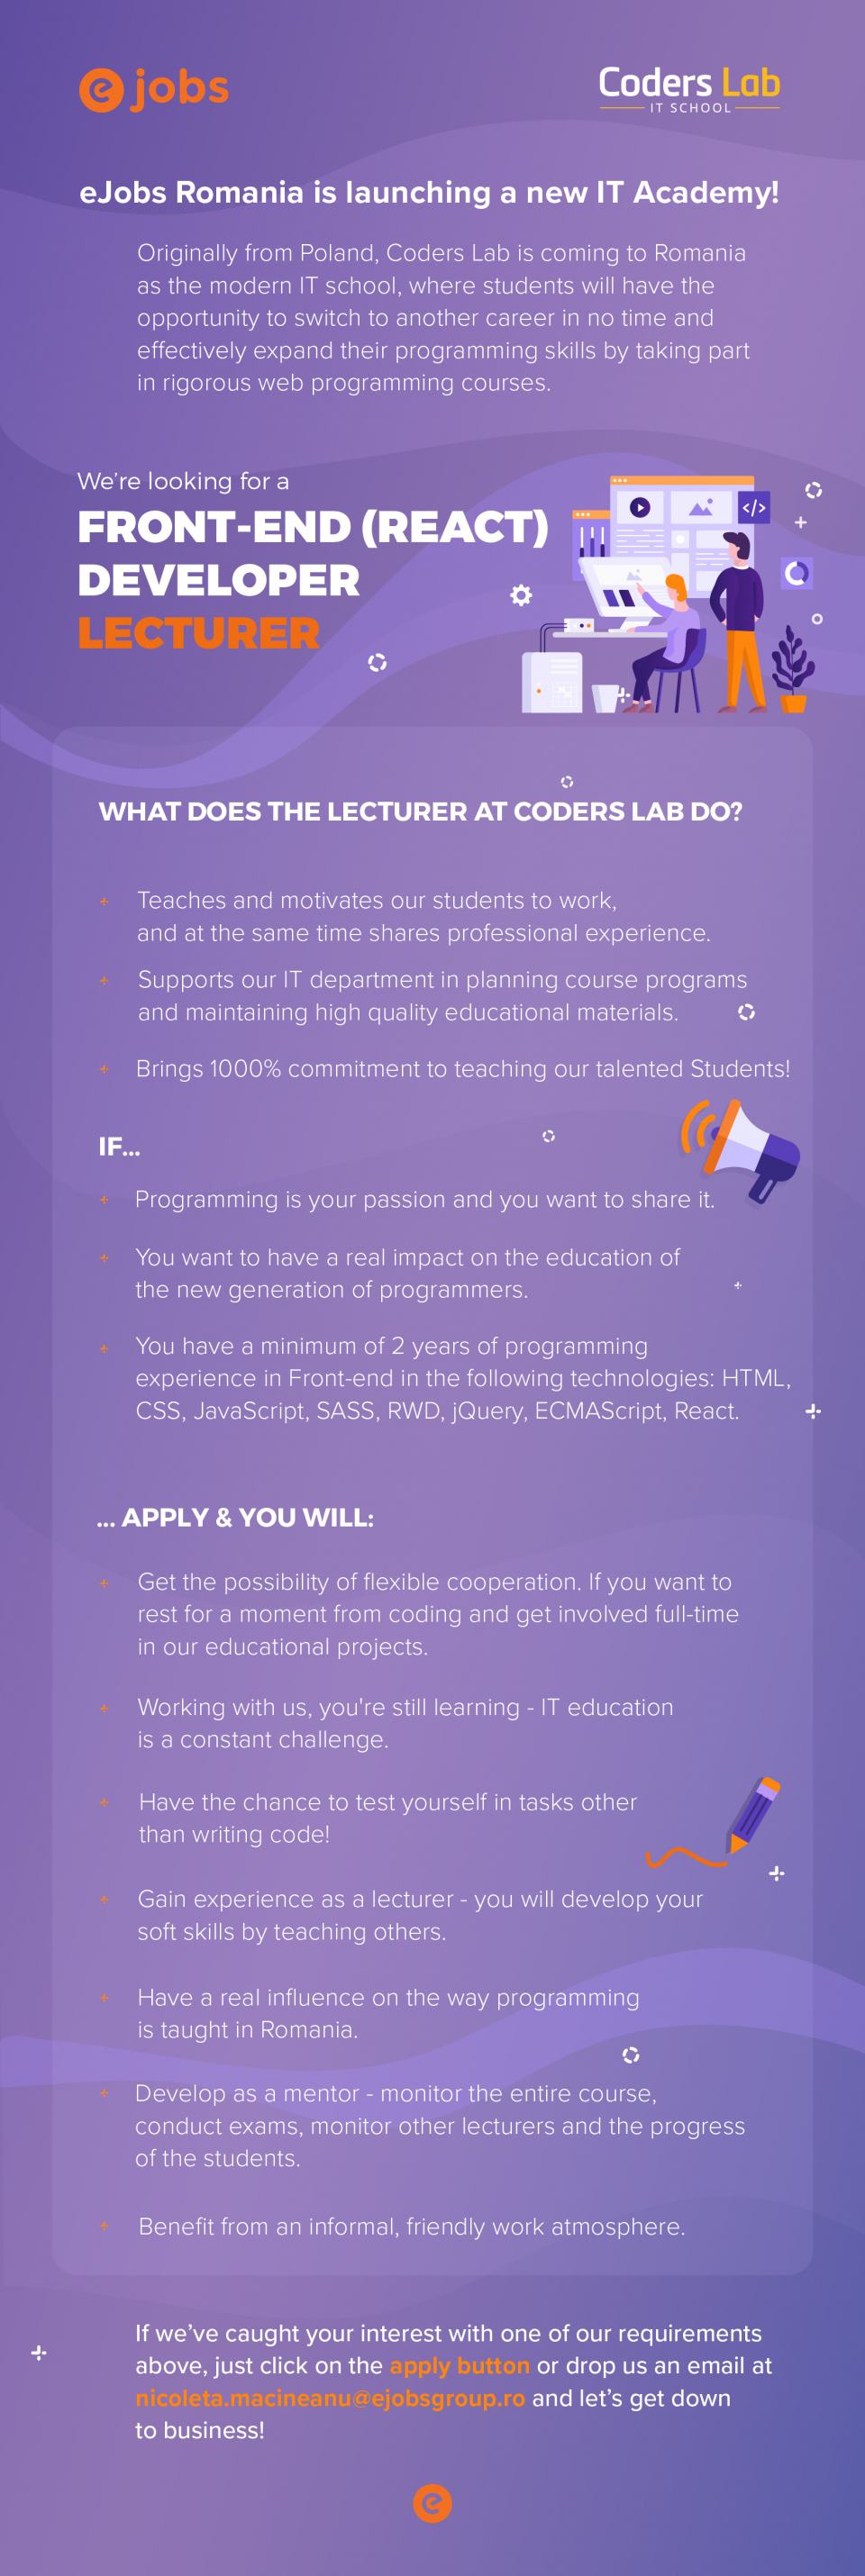 eJobs Romania is launching a new IT Academy!   Originally from Poland, Coders Lab is coming to Romania as the modern IT school, where students will have the opportunity to switch to another career in no time and effectively expand their programming skills by taking part in rigorous web programming courses.  We are looking for a  Front-end (React) Developer - Lecturer  What does the lecturer at Coders Lab do?  Teaches and motivates our students to work, and at the same time shares his professional experience.  Supports the IT department in planning course programs and maintaining high quality educational materials.  Bringing 1000% commitment to teaching our talented students!  If...  Programming is your passion and you want to share it.  You want to have a real impact on the education of the new generation of programmers.  You have a minimum of 2 years of programming experience in Front-end in the following technologies: HTML, CSS, JavaScript, SASS, RWD, jQuery, ECMAScript, React.  Apply and you will:  Get the possibility of flexible cooperation. If you want to rest for a moment from coding and get involved full-time in our educational projects.  Working with us, you're still learning - IT education is a constant challenge.  Have the chance to test yourself in tasks other than writing code!  Gain experience as a lecturer - you will develop your soft skills by teaching others.  Have a real influence on the way programming is taught in Romania.  Develop as a mentor - monitor the entire course, conduct exams, monitor other lecturers and progress of students.  Benefit from an informal, friendly work atmosphere.If we've caught your interest with one of our requirements above, just click on the apply button or drop us an email at nicoleta.macineanu@ejobsgroup.ro and let's get down to business!  eJobs is the leading Romanian online recruiting platform, with over 40.000 active jobs available at all times, posted by top companies. More than 3.8 million professionals are regis